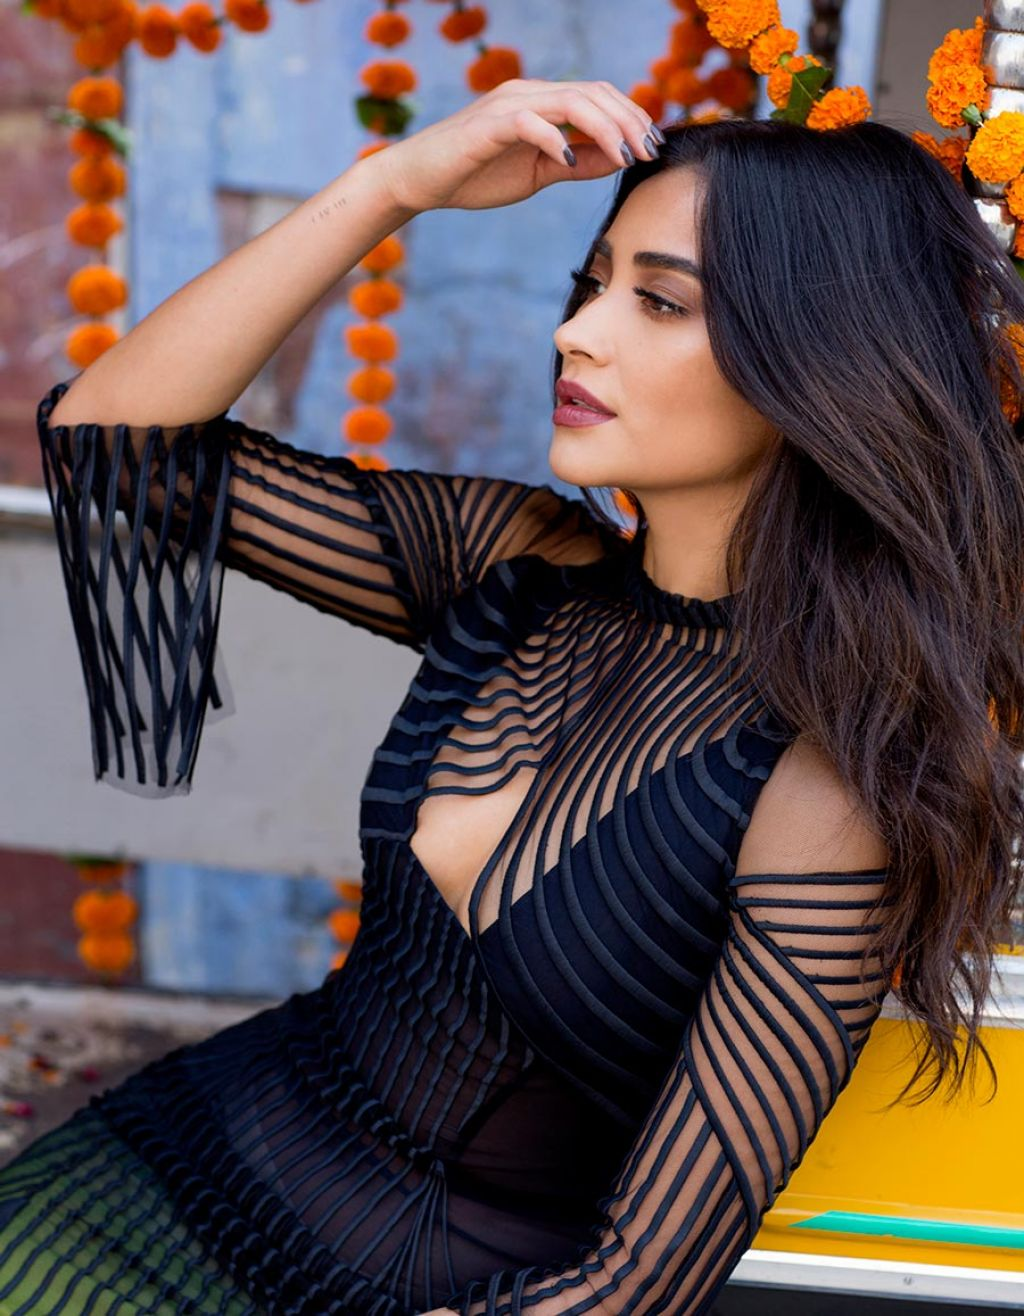 http://celebmafia.com/wp-content/uploads/2018/03/shay-mitchell-photoshoot-for-modeliste-magazine-march-2018-21.jpg